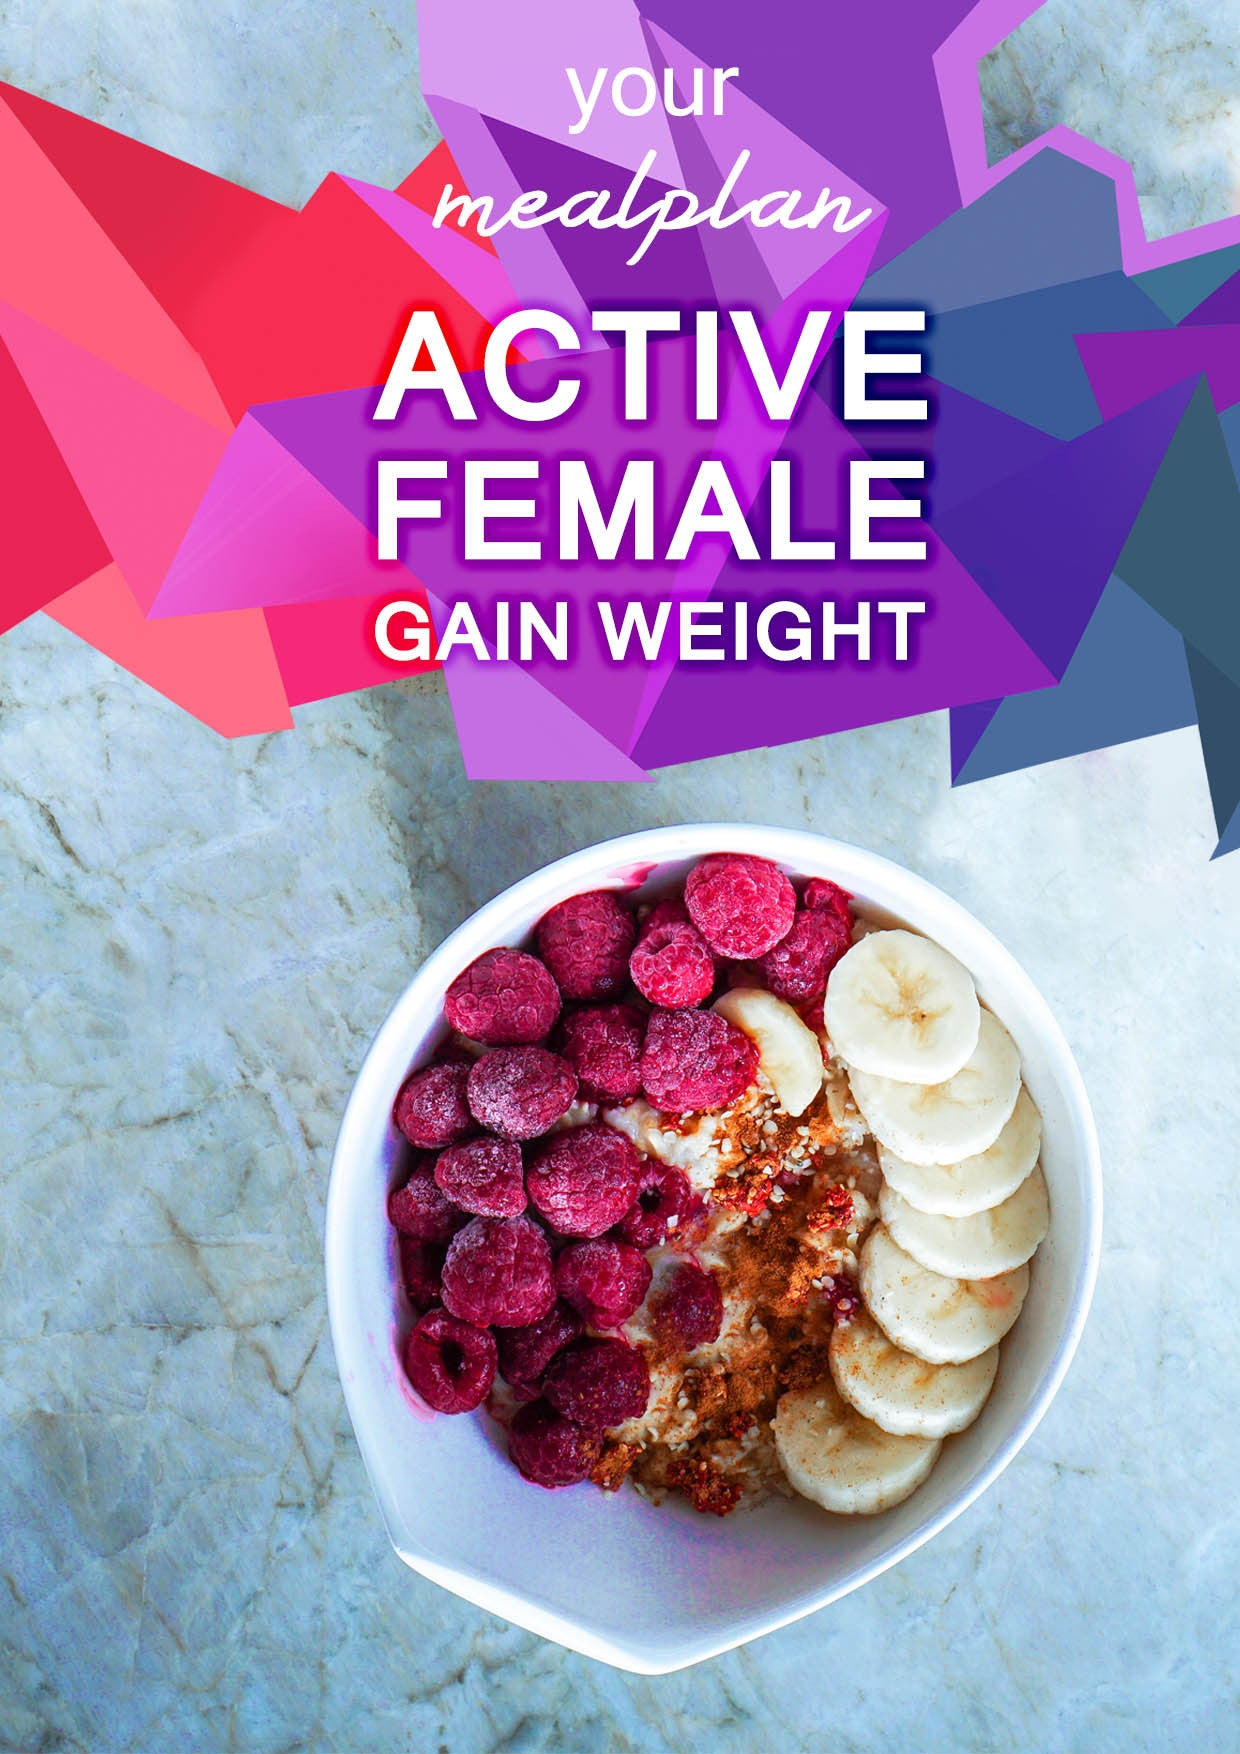 Active Female - Gain Weight